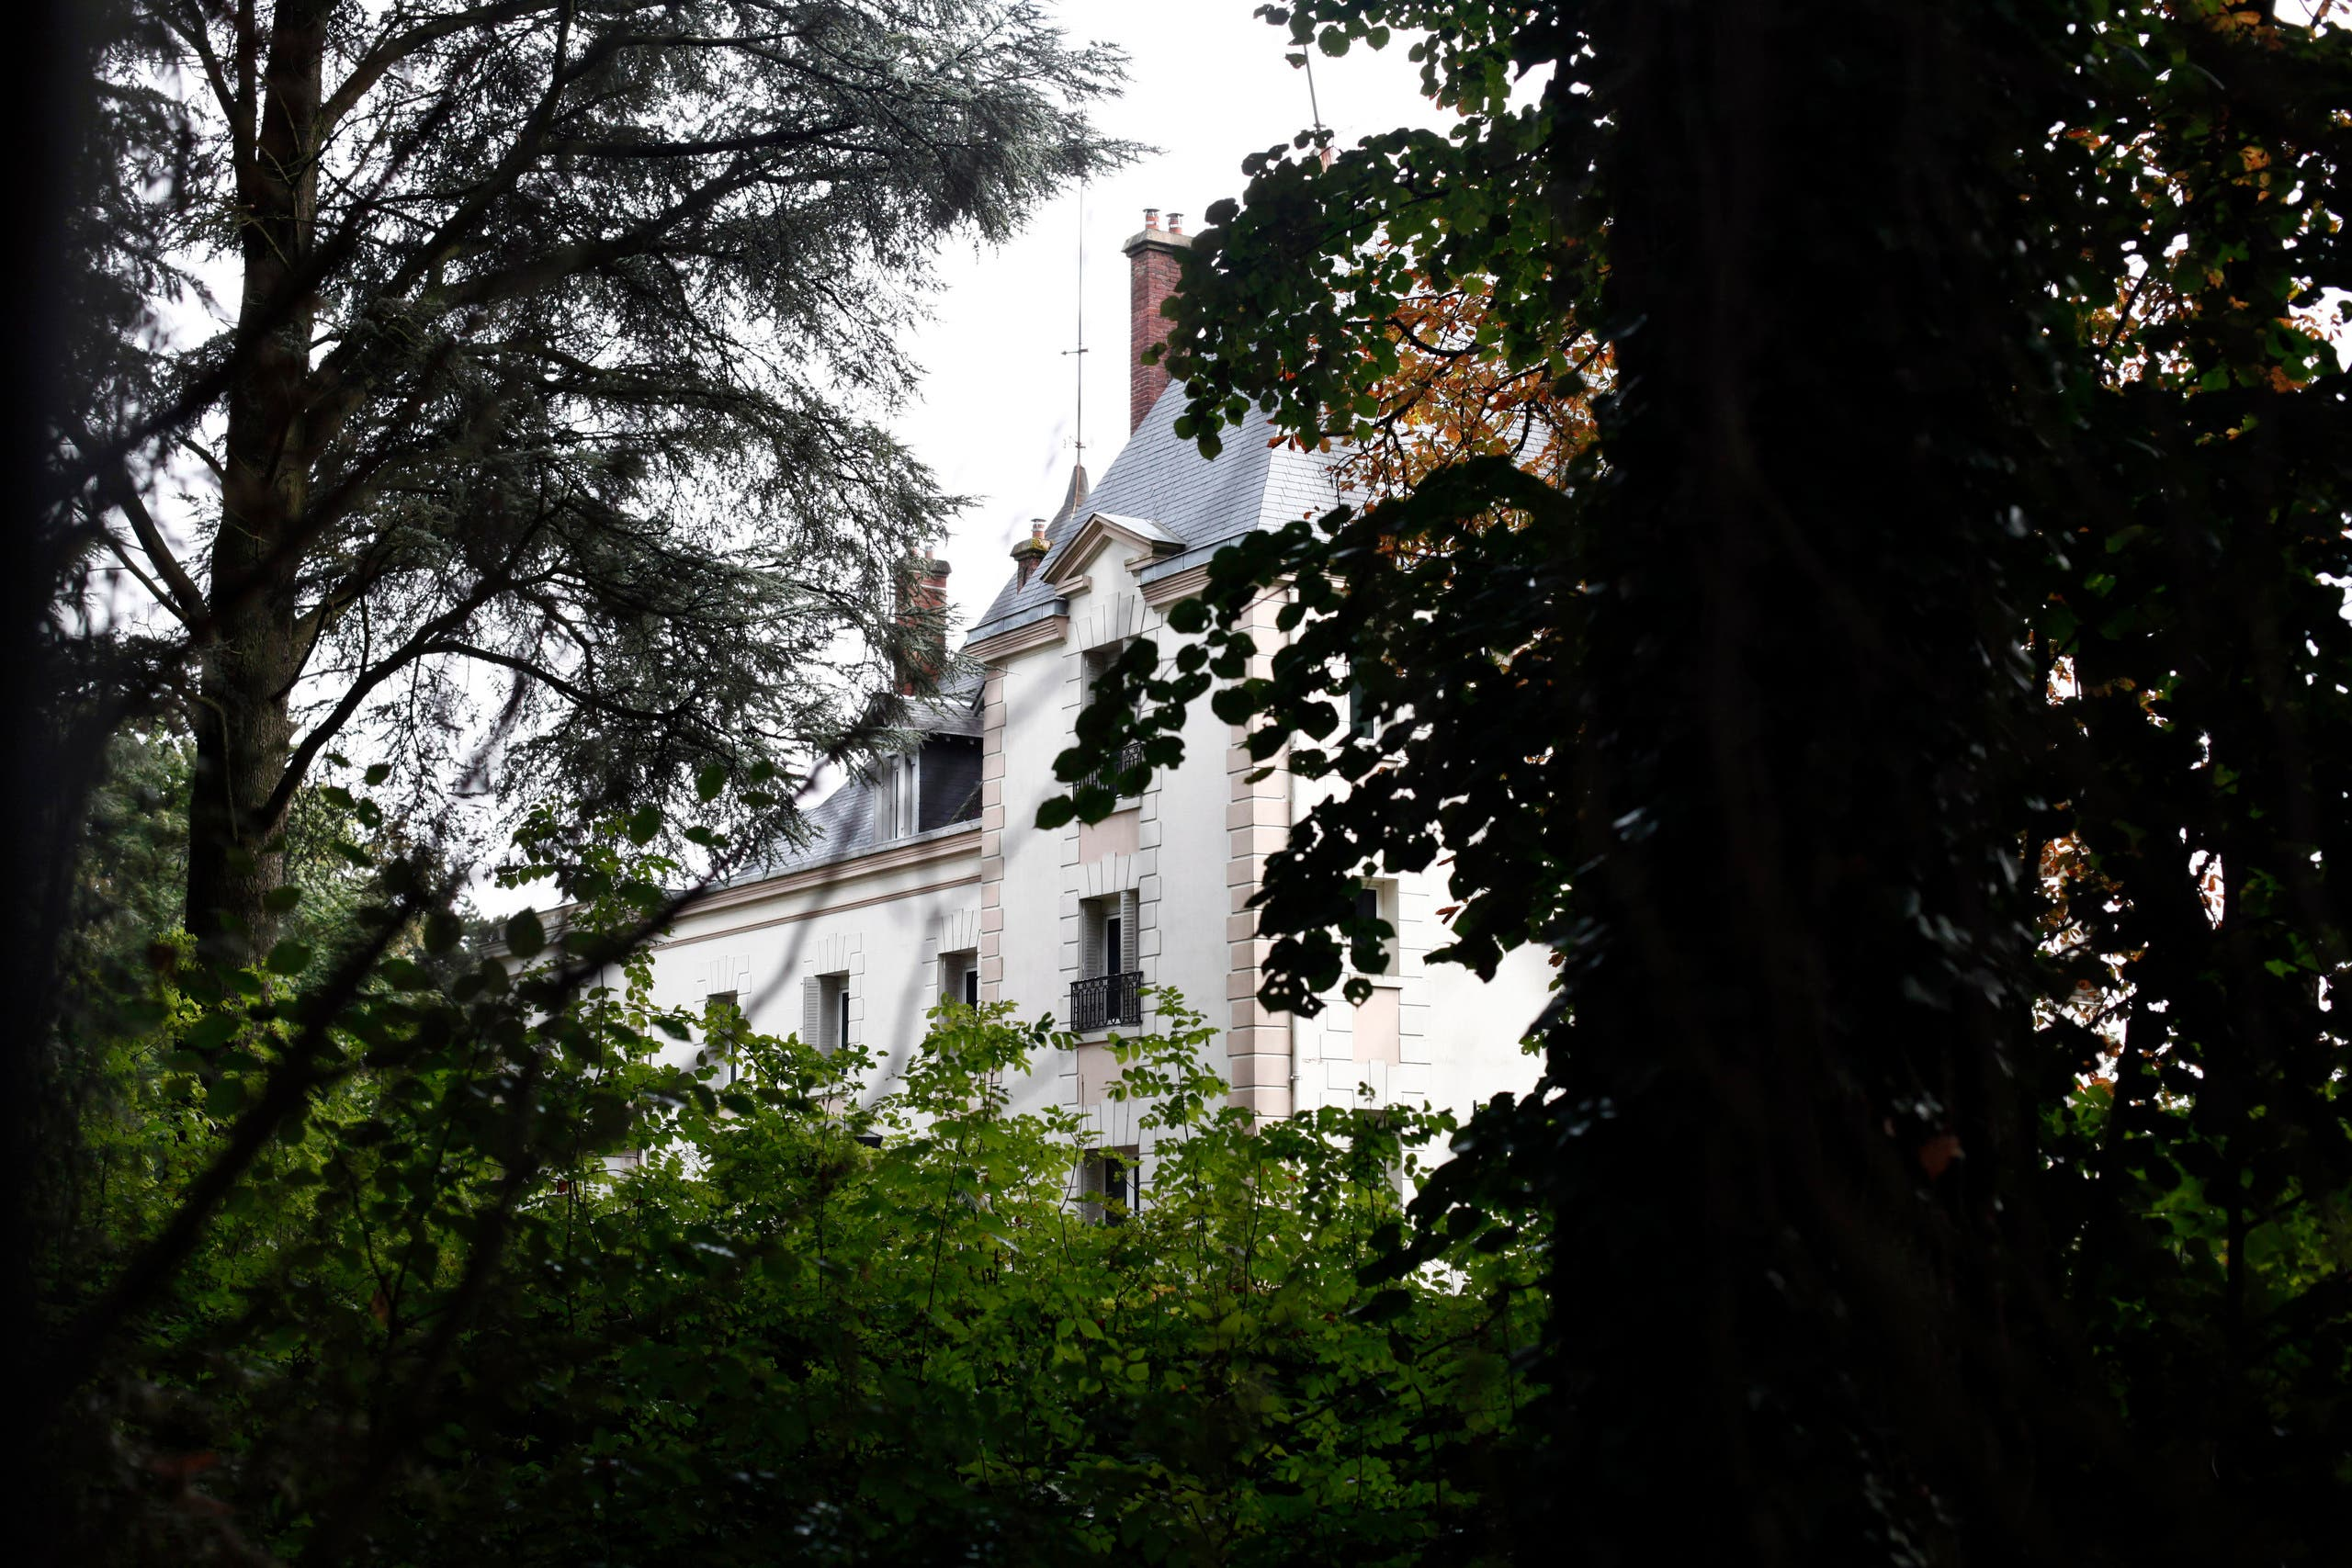 The manor of Bashar al-Assad's uncle, Rifaat al-Assad, is seen, in Bessancourt, north of Paris, Friday, Sept. 13, 2013. The 600 square metre manor whose real estate portfolio in the Paris region alone is estimated at Euros160 million.